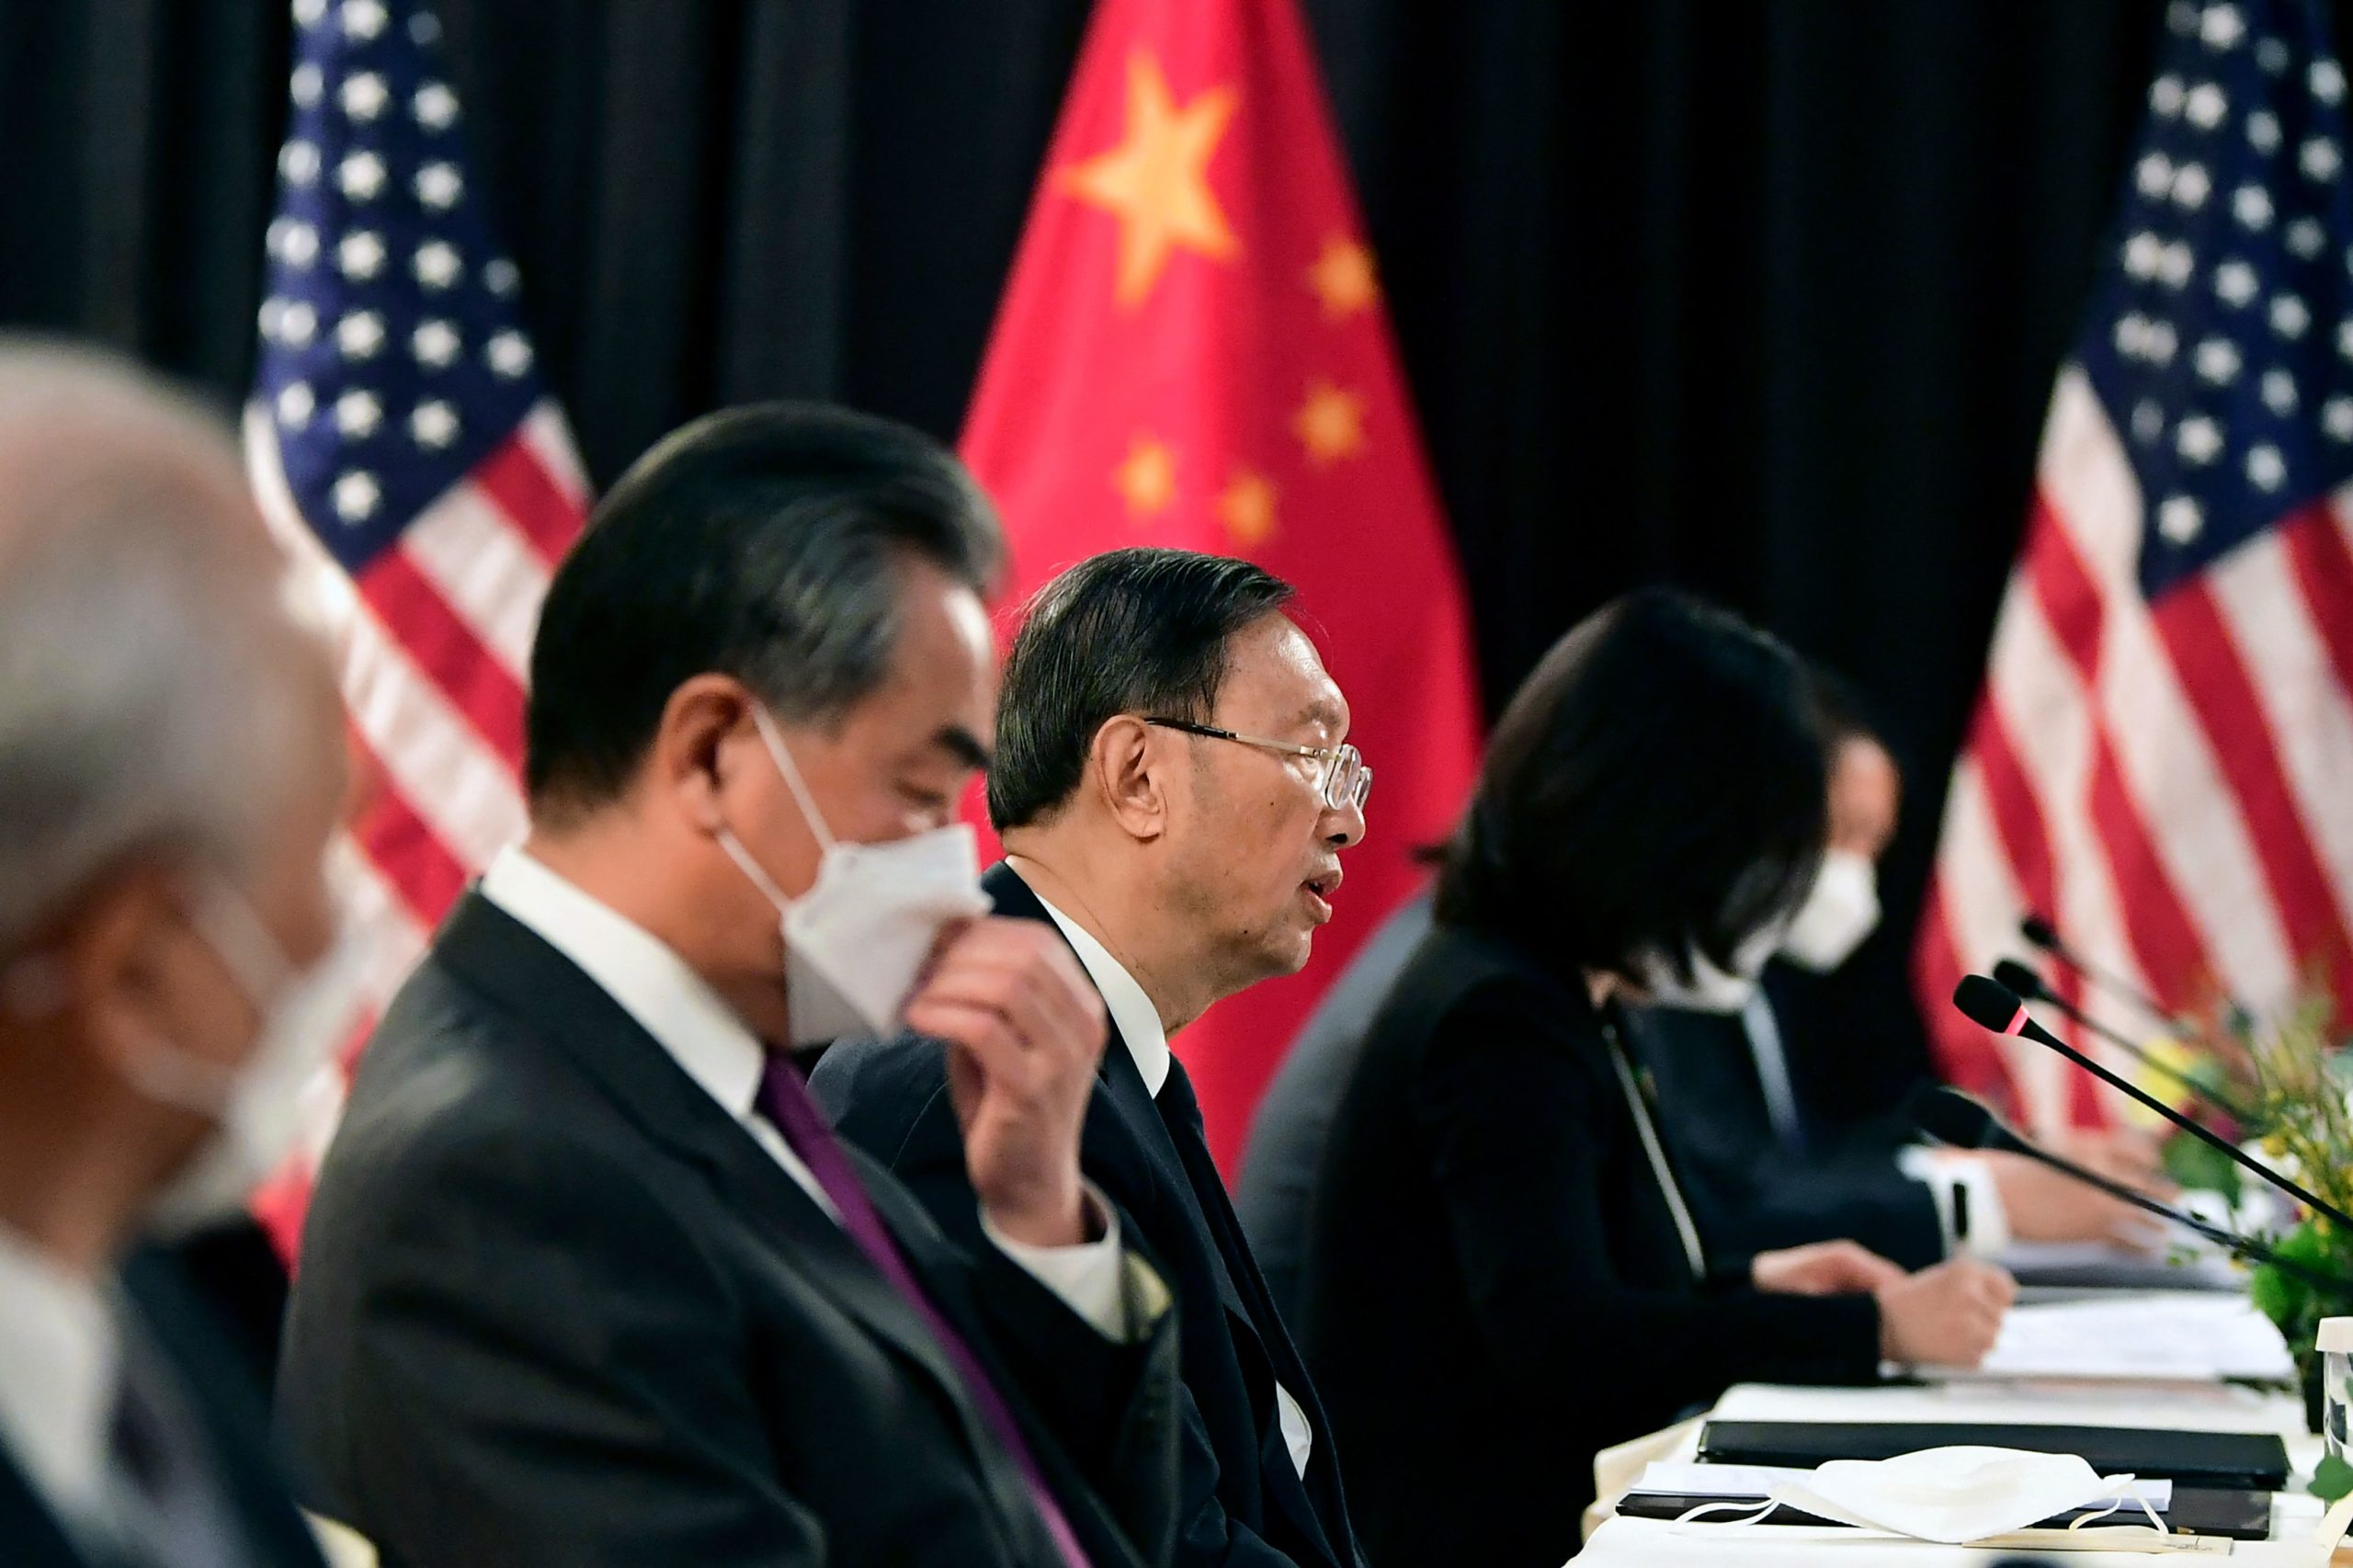 """TOPSHOT - The Chinese delegation led by Yang Jiechi (C), director of the Central Foreign Affairs Commission Office and Wang Yi (2nd L), China's Foreign Minister, speak with their US counterparts at the opening session of US-China talks at the Captain Cook Hotel in Anchorage, Alaska on March 18, 2021. - China's actions """"threaten the rules-based order that maintains global stability,"""" US Secretary of State Antony Blinken said Thursday at the opening of a two-day meeting with Chinese counterparts in Alaska. (Photo by Frederic J. BROWN / POOL / AFP) (Photo by FREDERIC J. BROWN/POOL/AFP via Getty Images)"""